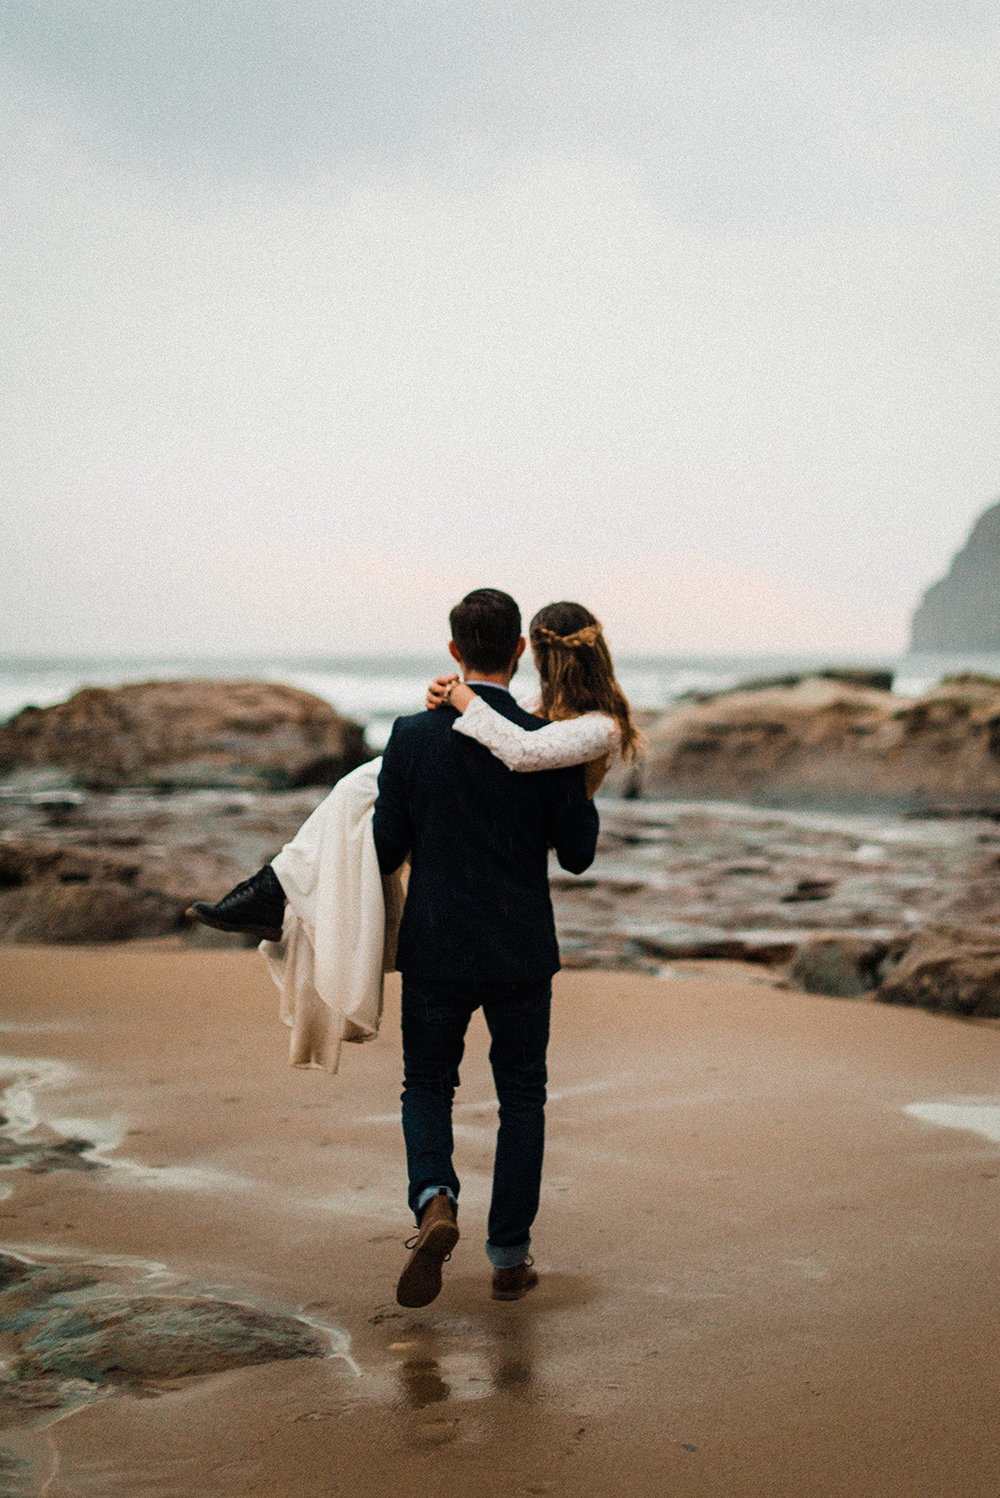 Oregon_Coast_Elopement_Wedding_The_Foxes_Photography_160.jpg